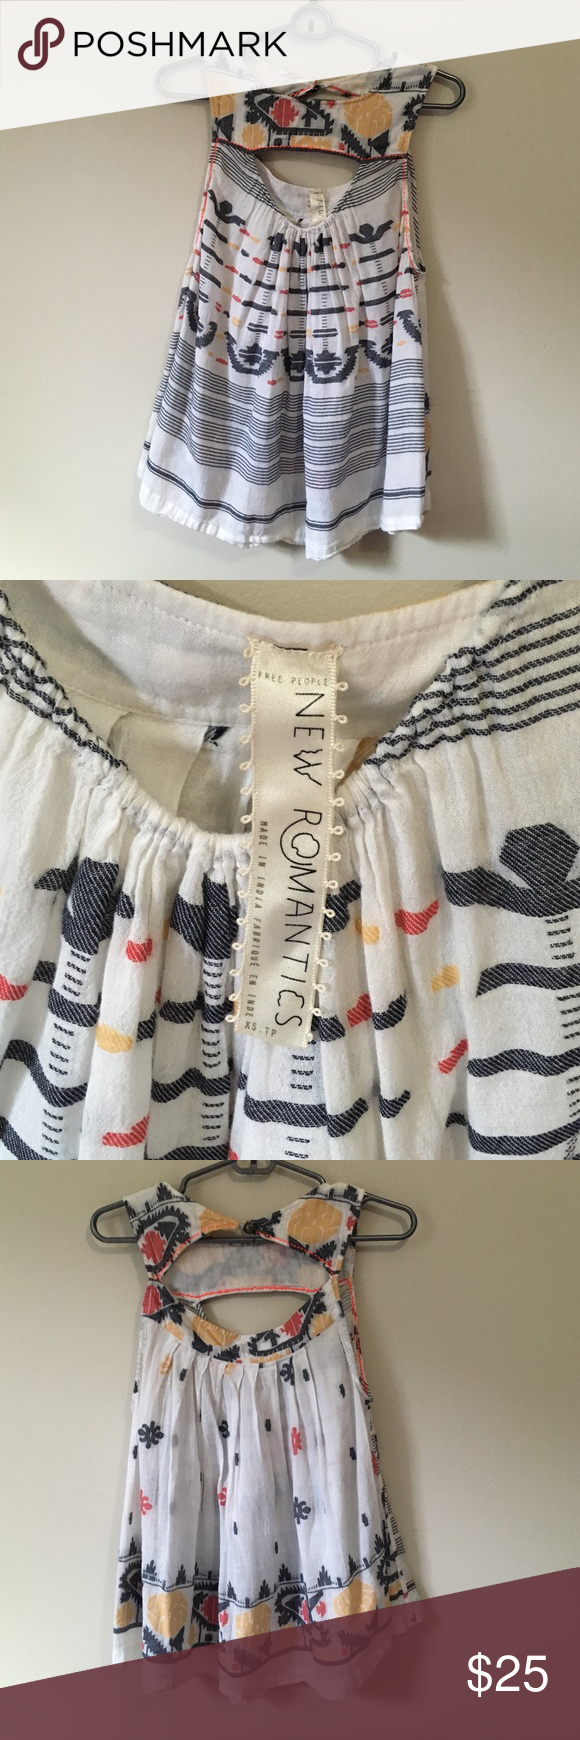 Free People patterned tank top This adorable flowy cotton tank has been worn once or twice and is in excellent condition! Free People Tops Tank Tops